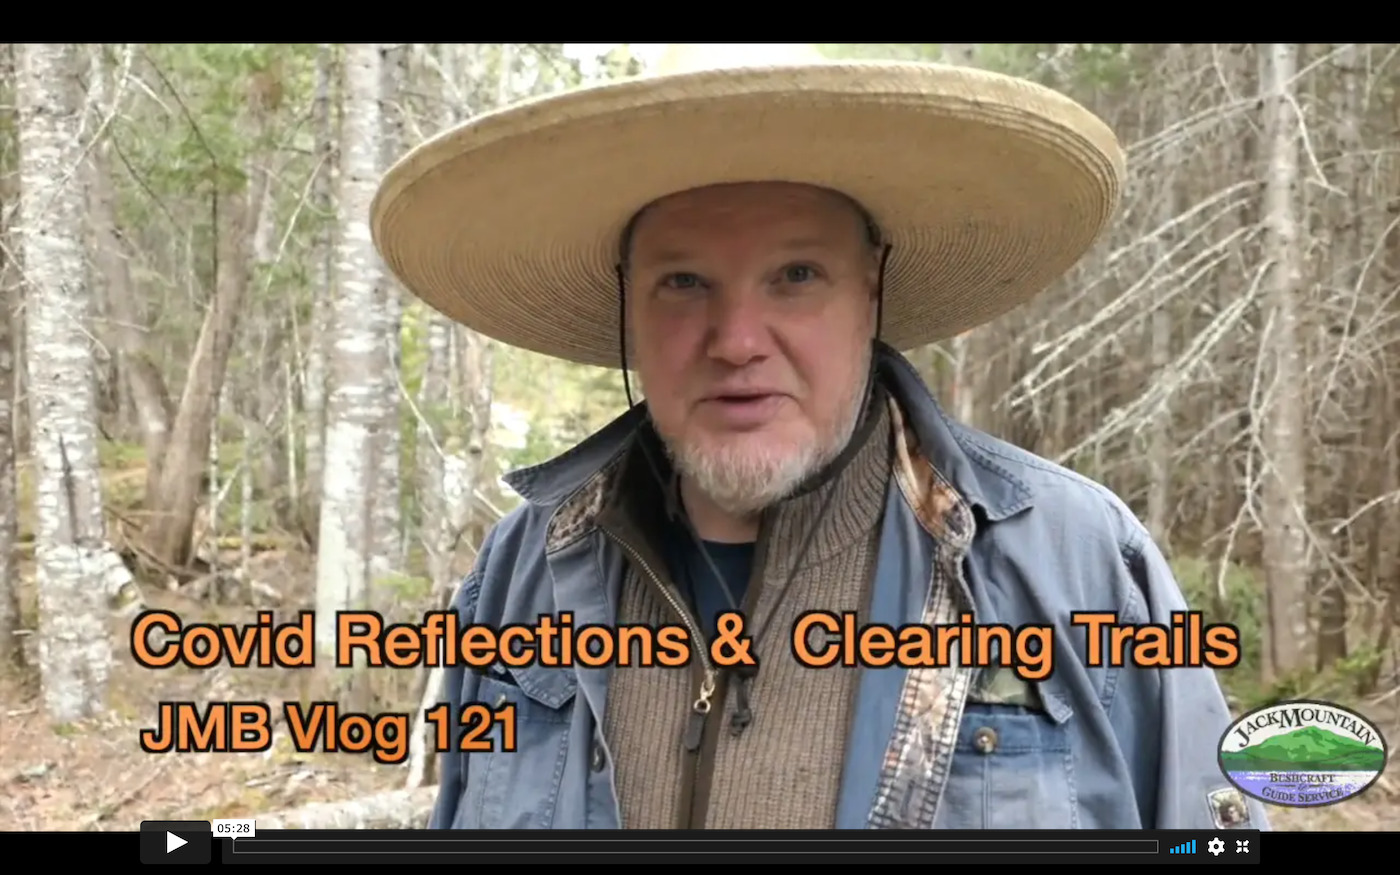 Covid Reflections & Clearing Trails | JMB Vlog 121